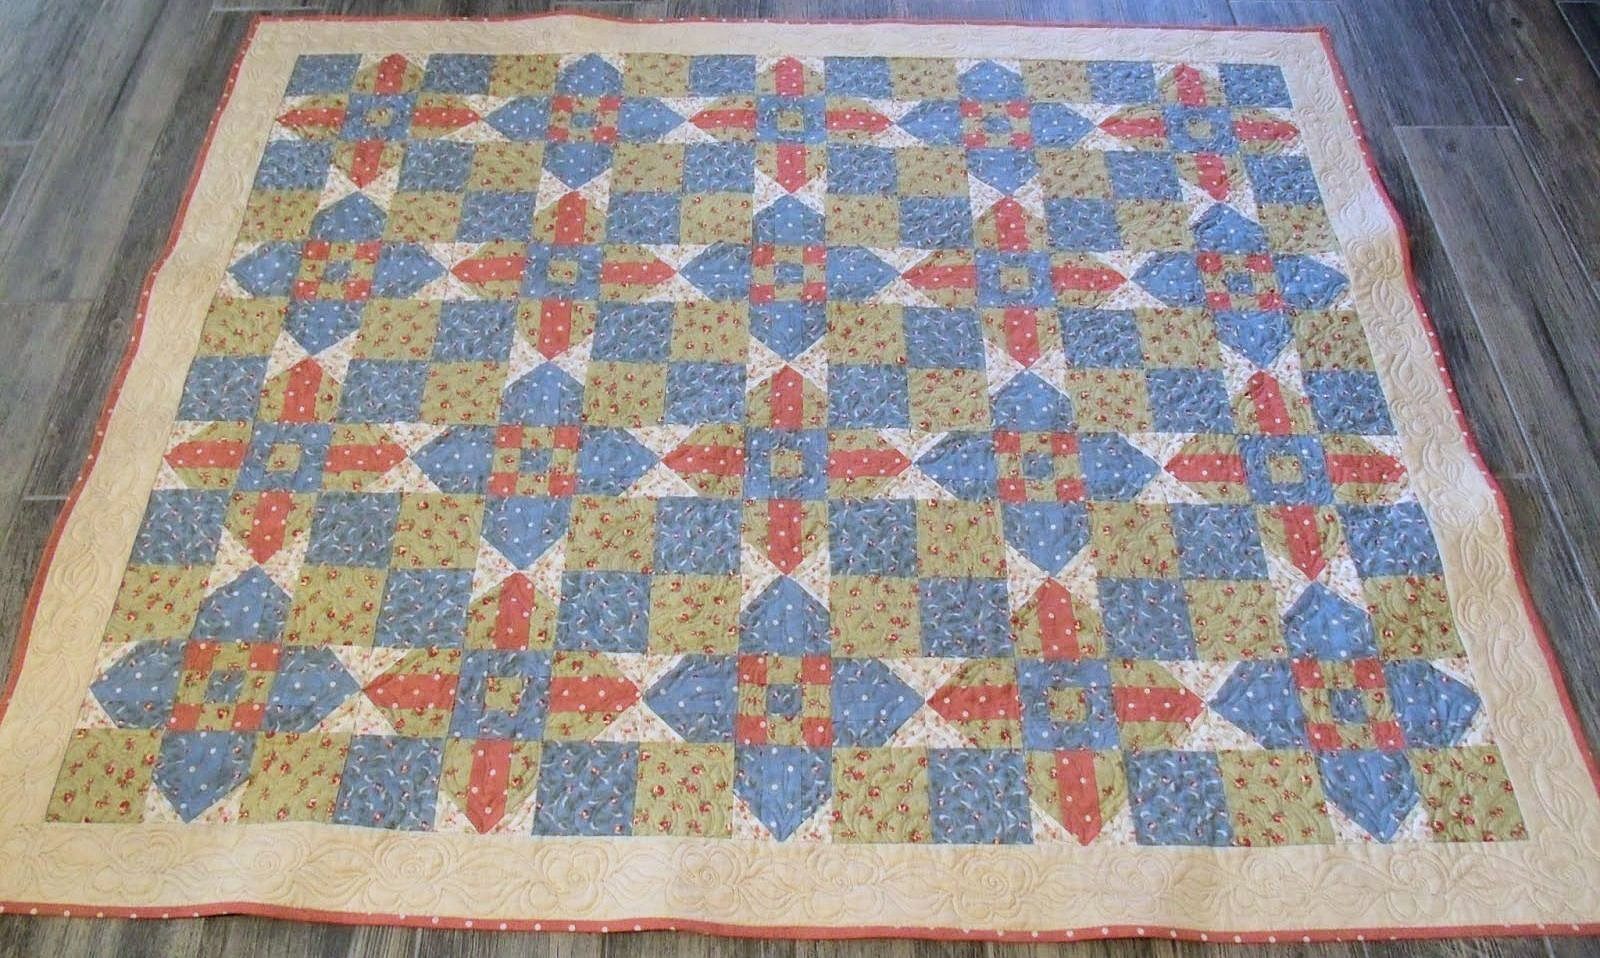 Pam's Berry Cross quilt from Week 3